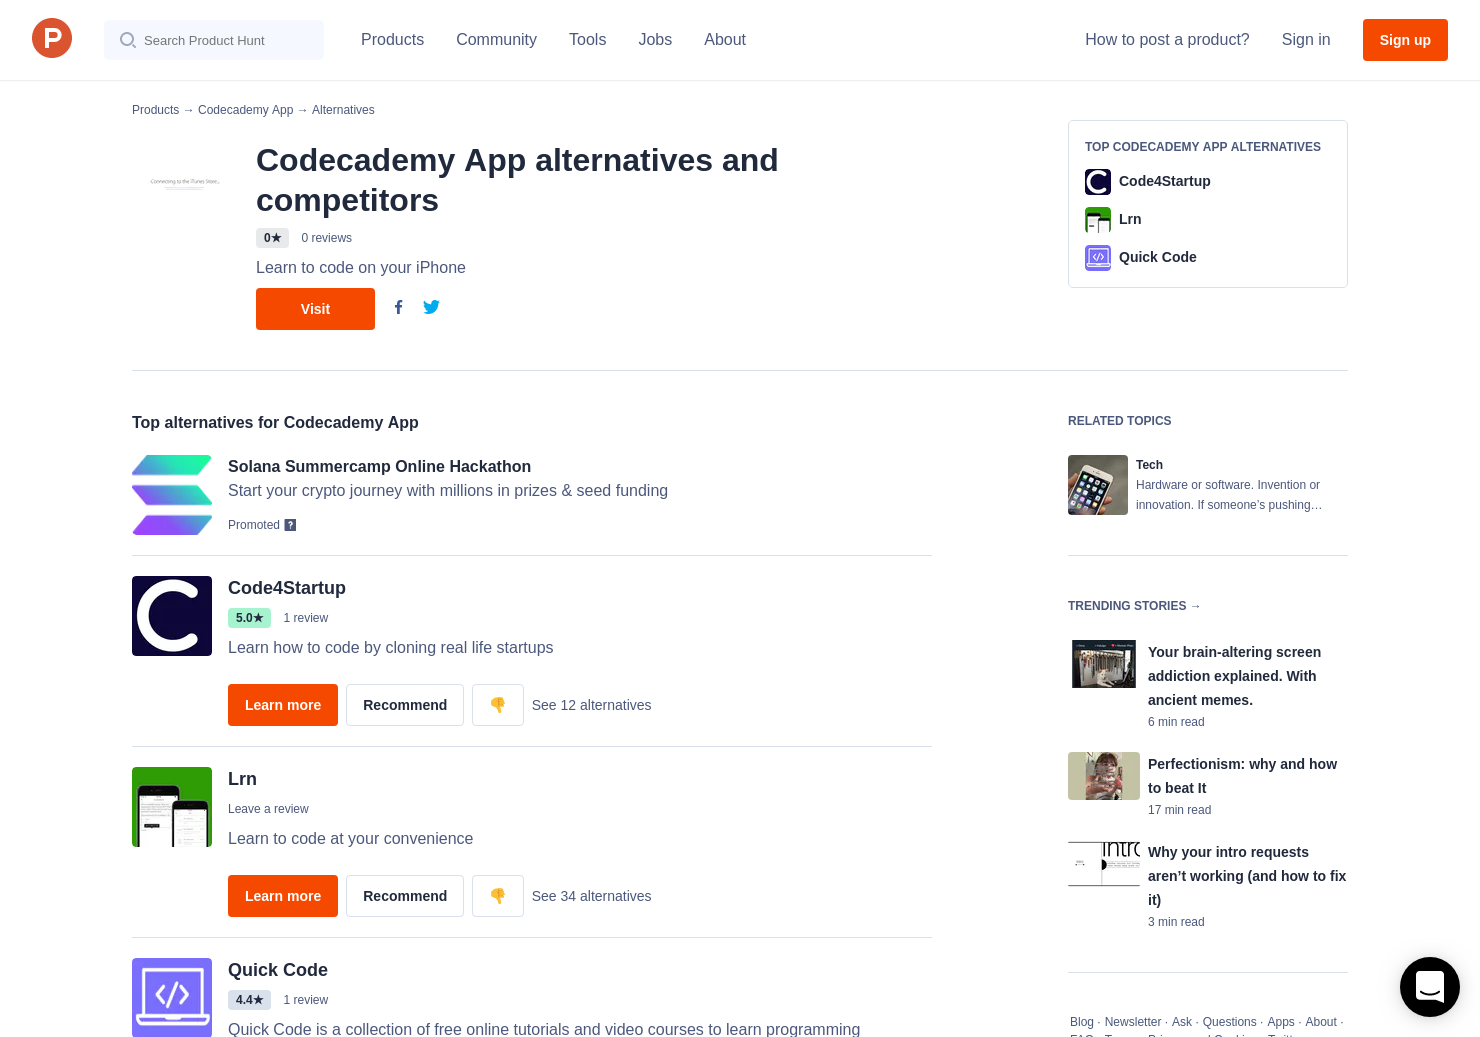 11 Alternatives to Codecademy App | Product Hunt